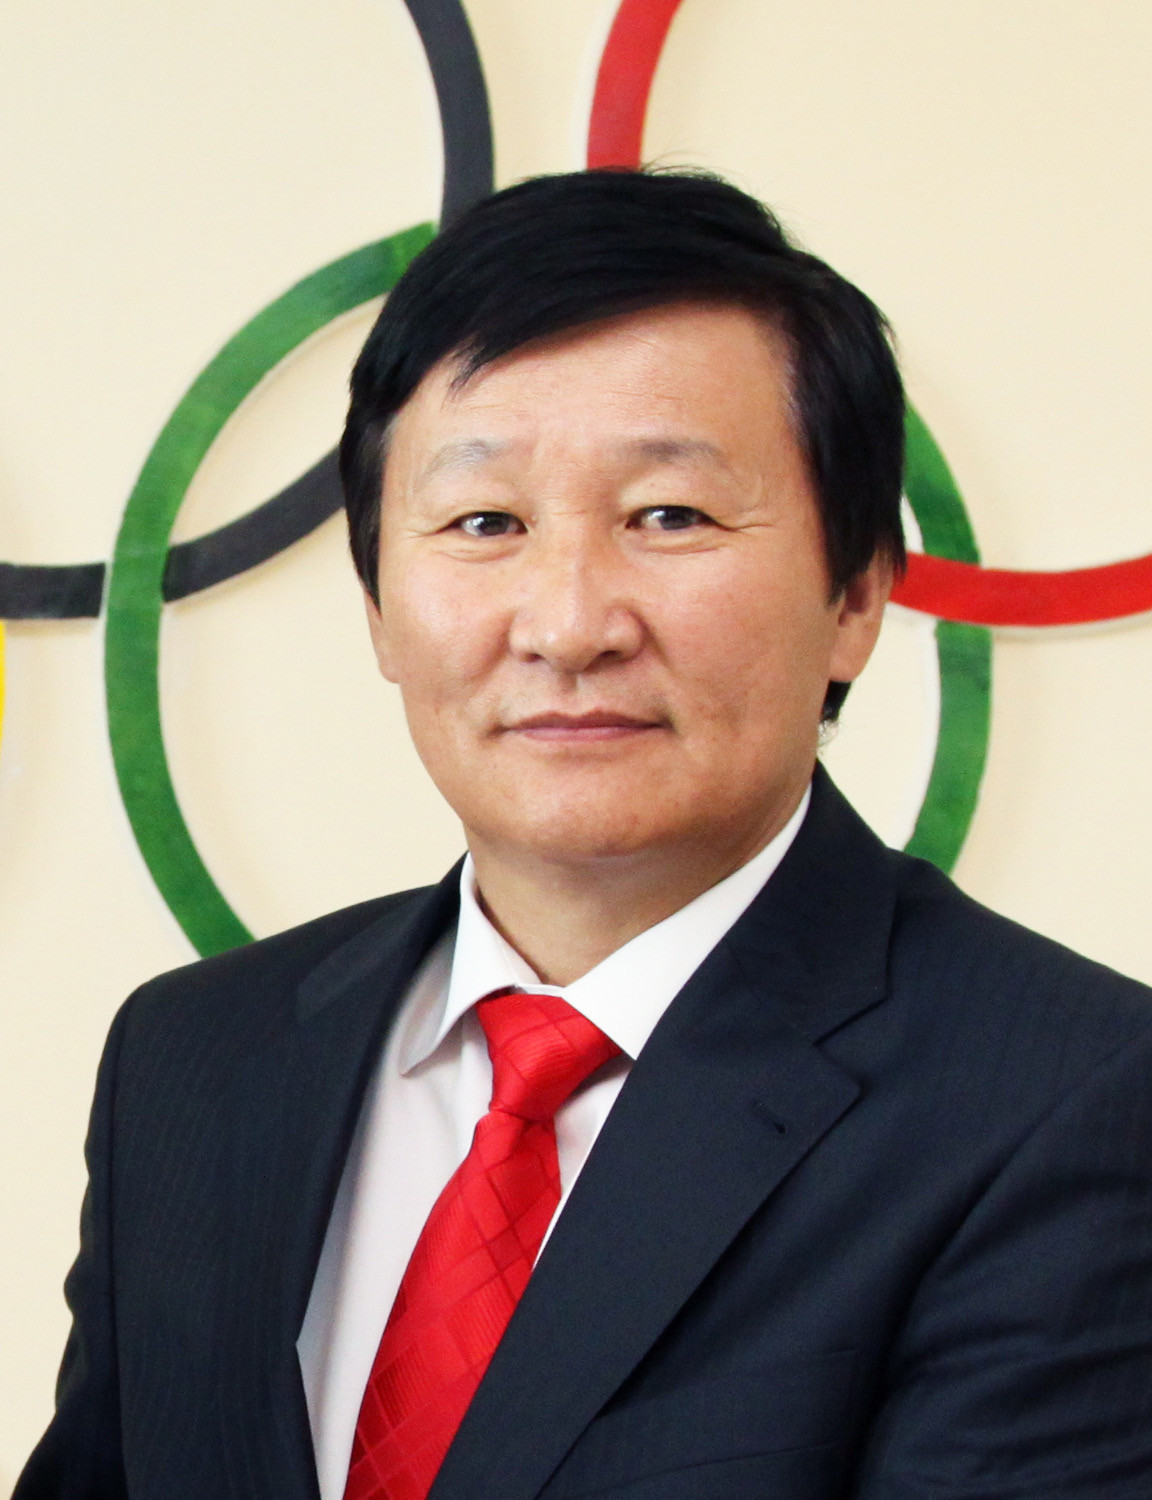 Tributes paid to former Mongolia NOC President and ANOC Commission member Zagdsuren after death aged 63